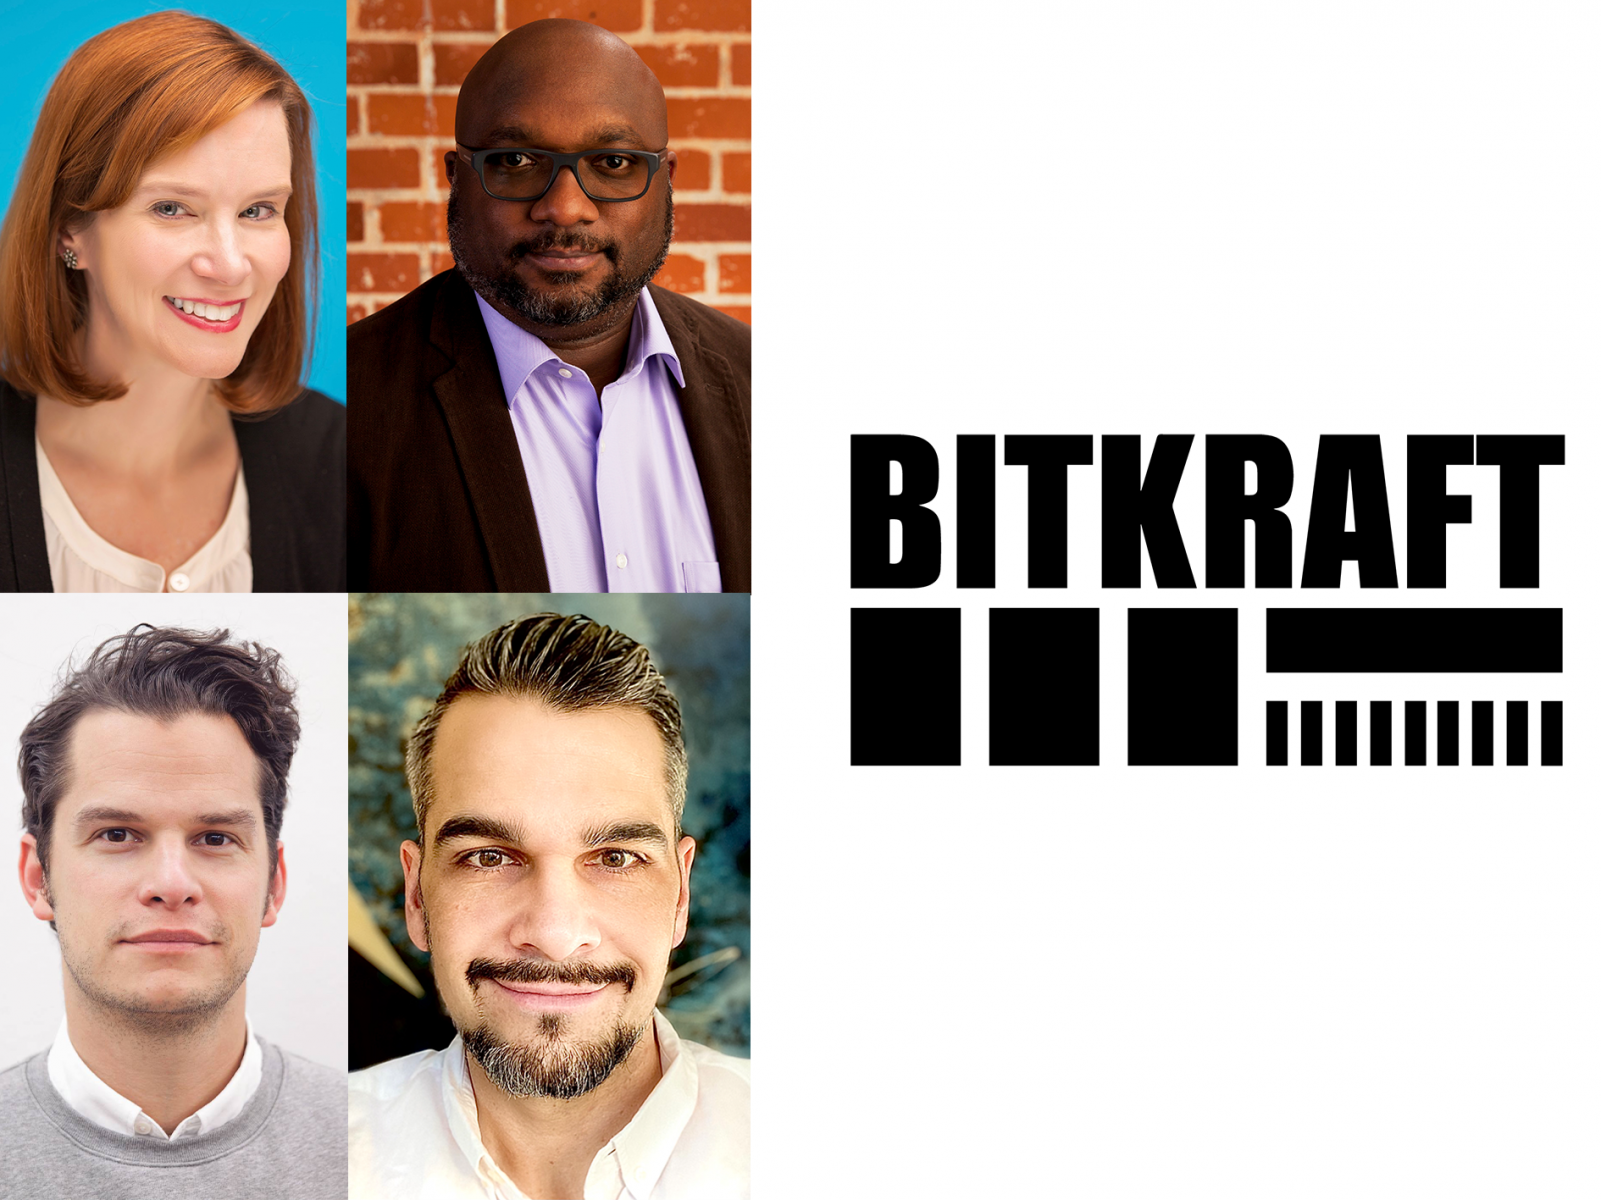 BITKRAFT Ventures announces new advisory board